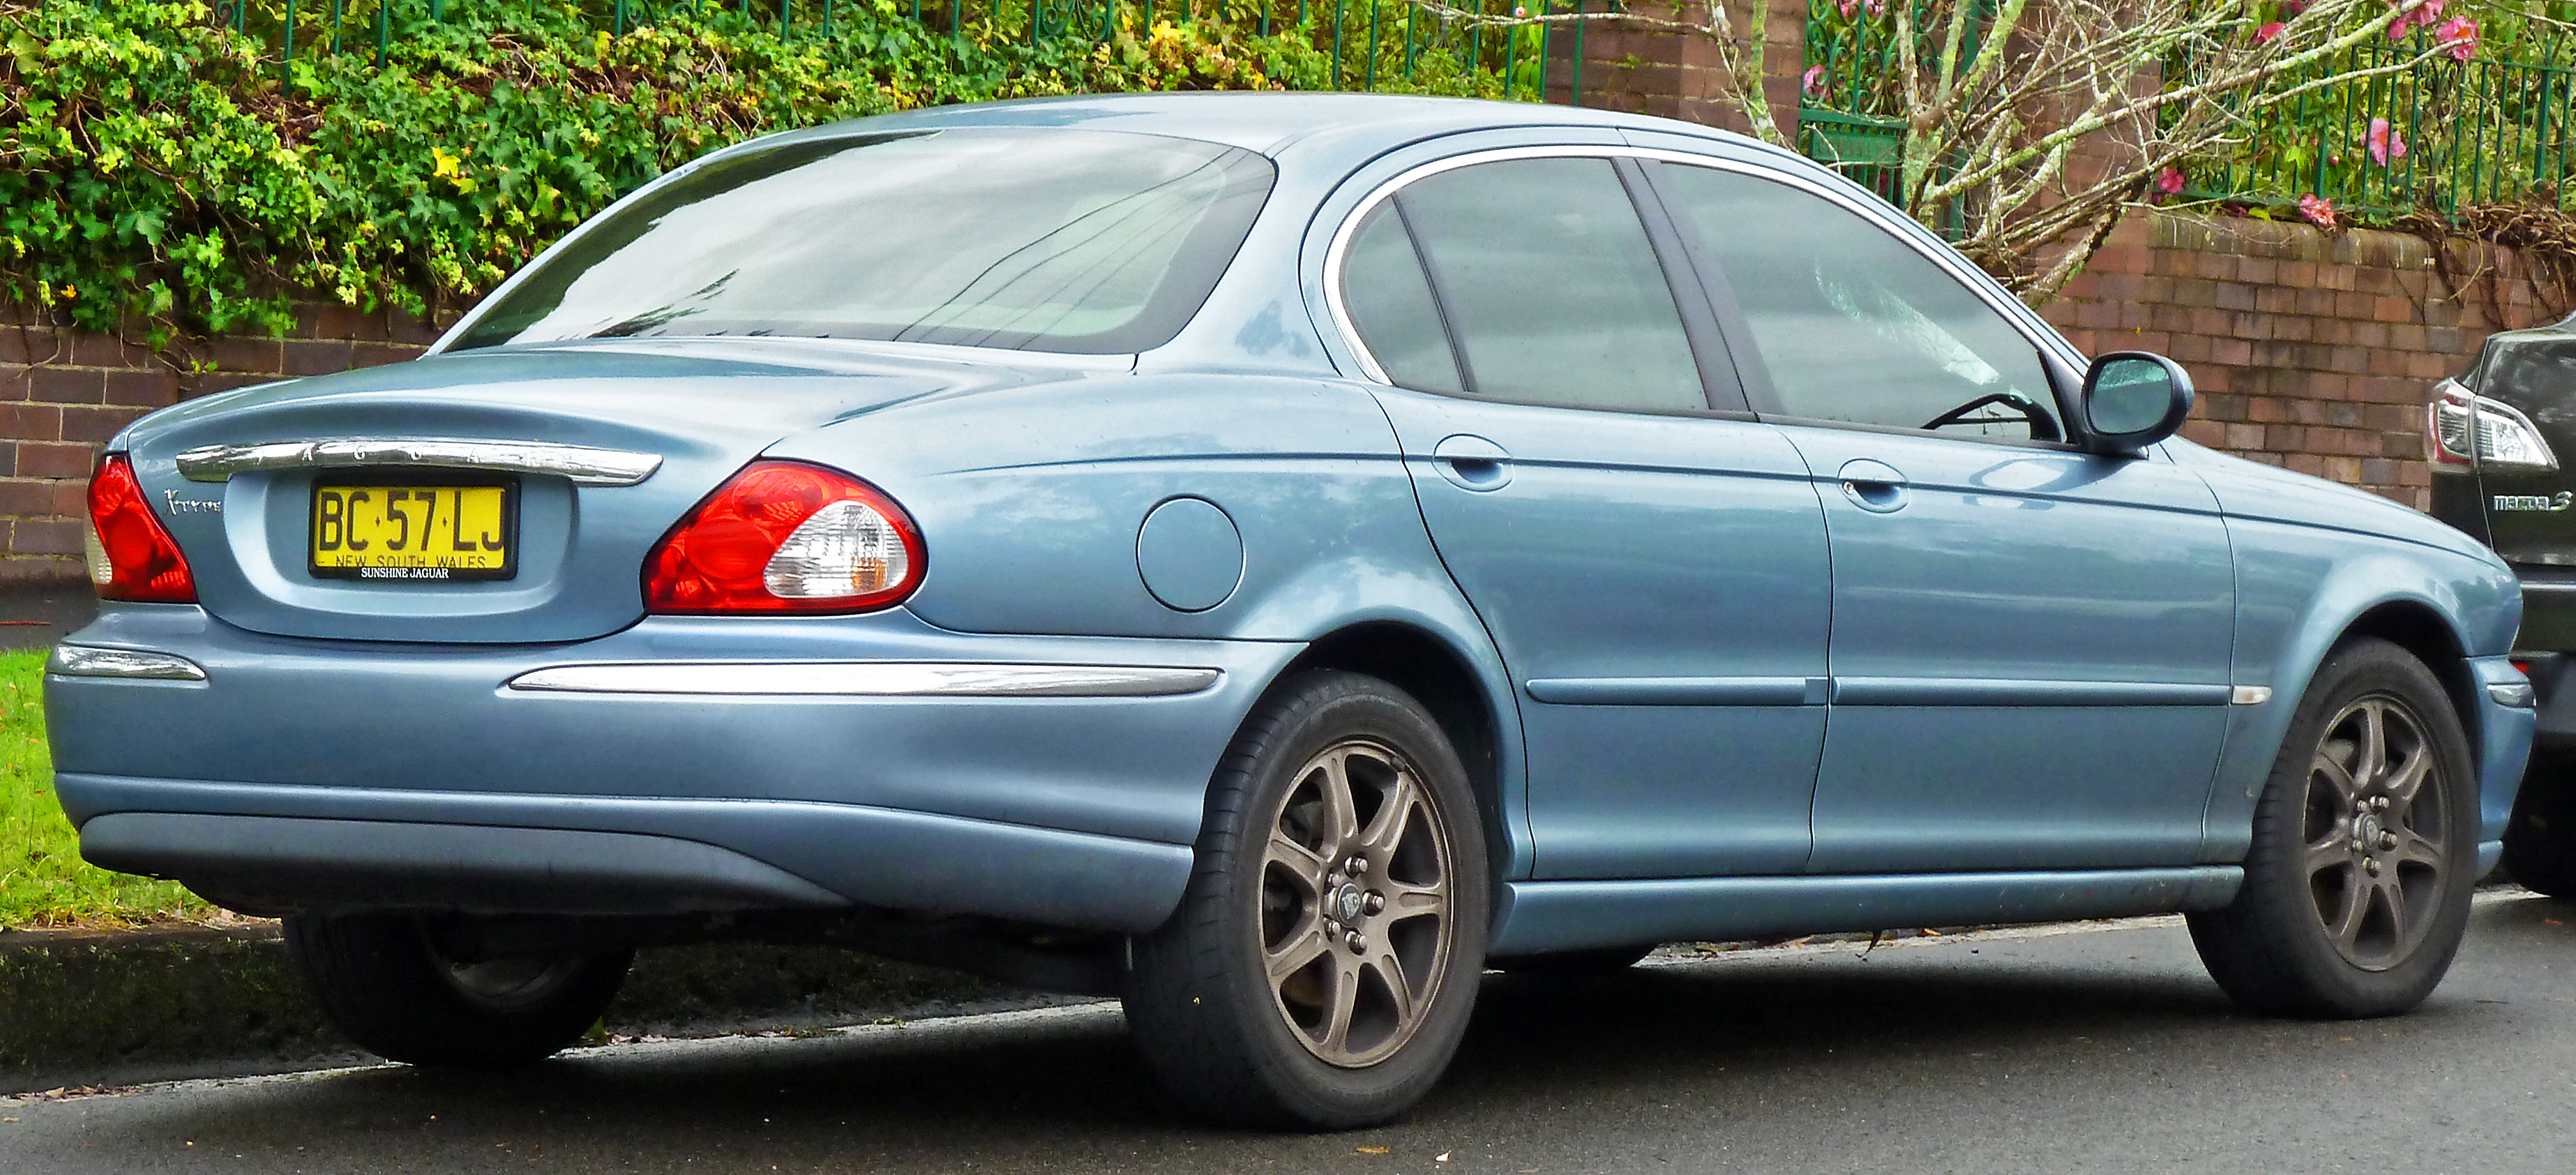 File:2004 2006 Jaguar X Type (X400) SE Sedan (2011